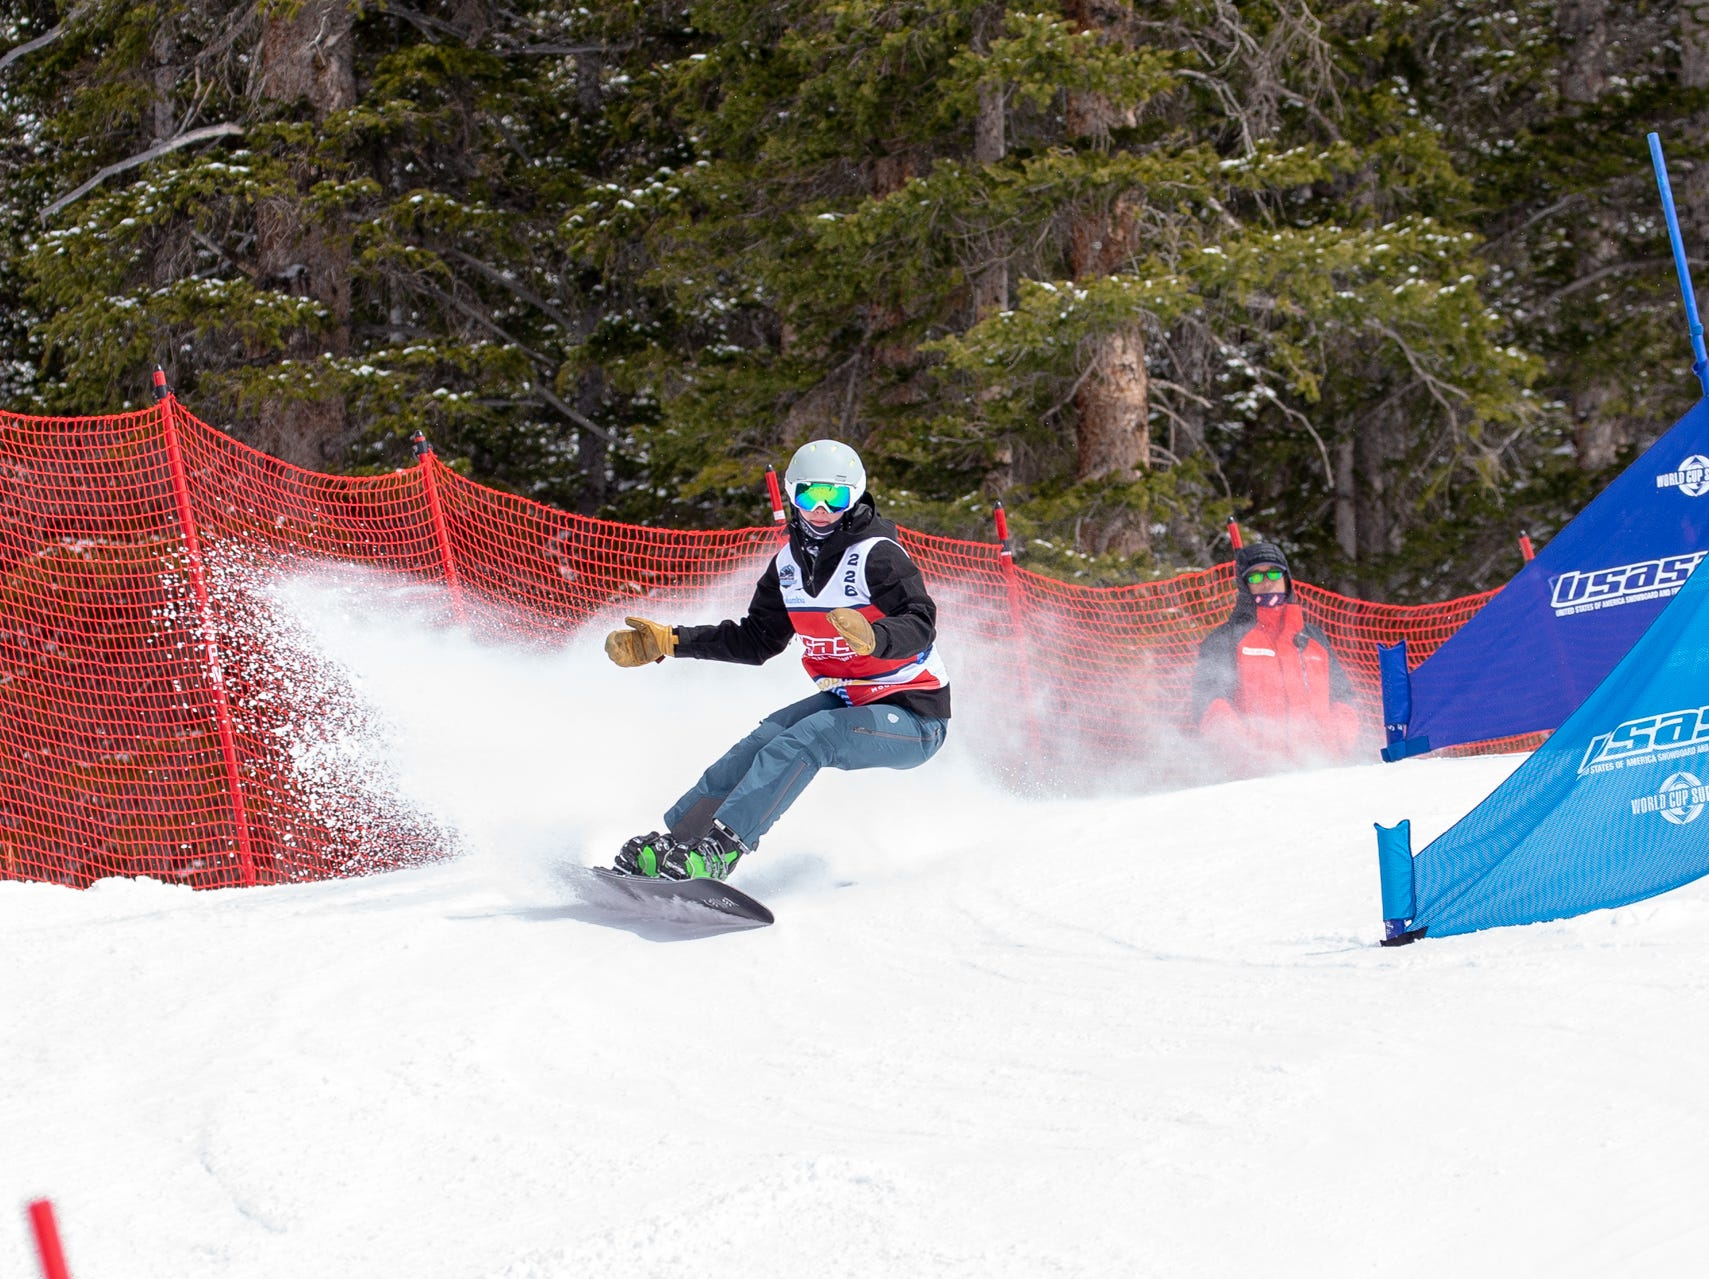 Tate Harkness of Mt. Shasta / North State snowboarders compete at the 2019 USASA National Championships at Copper Mountain in Colorado.